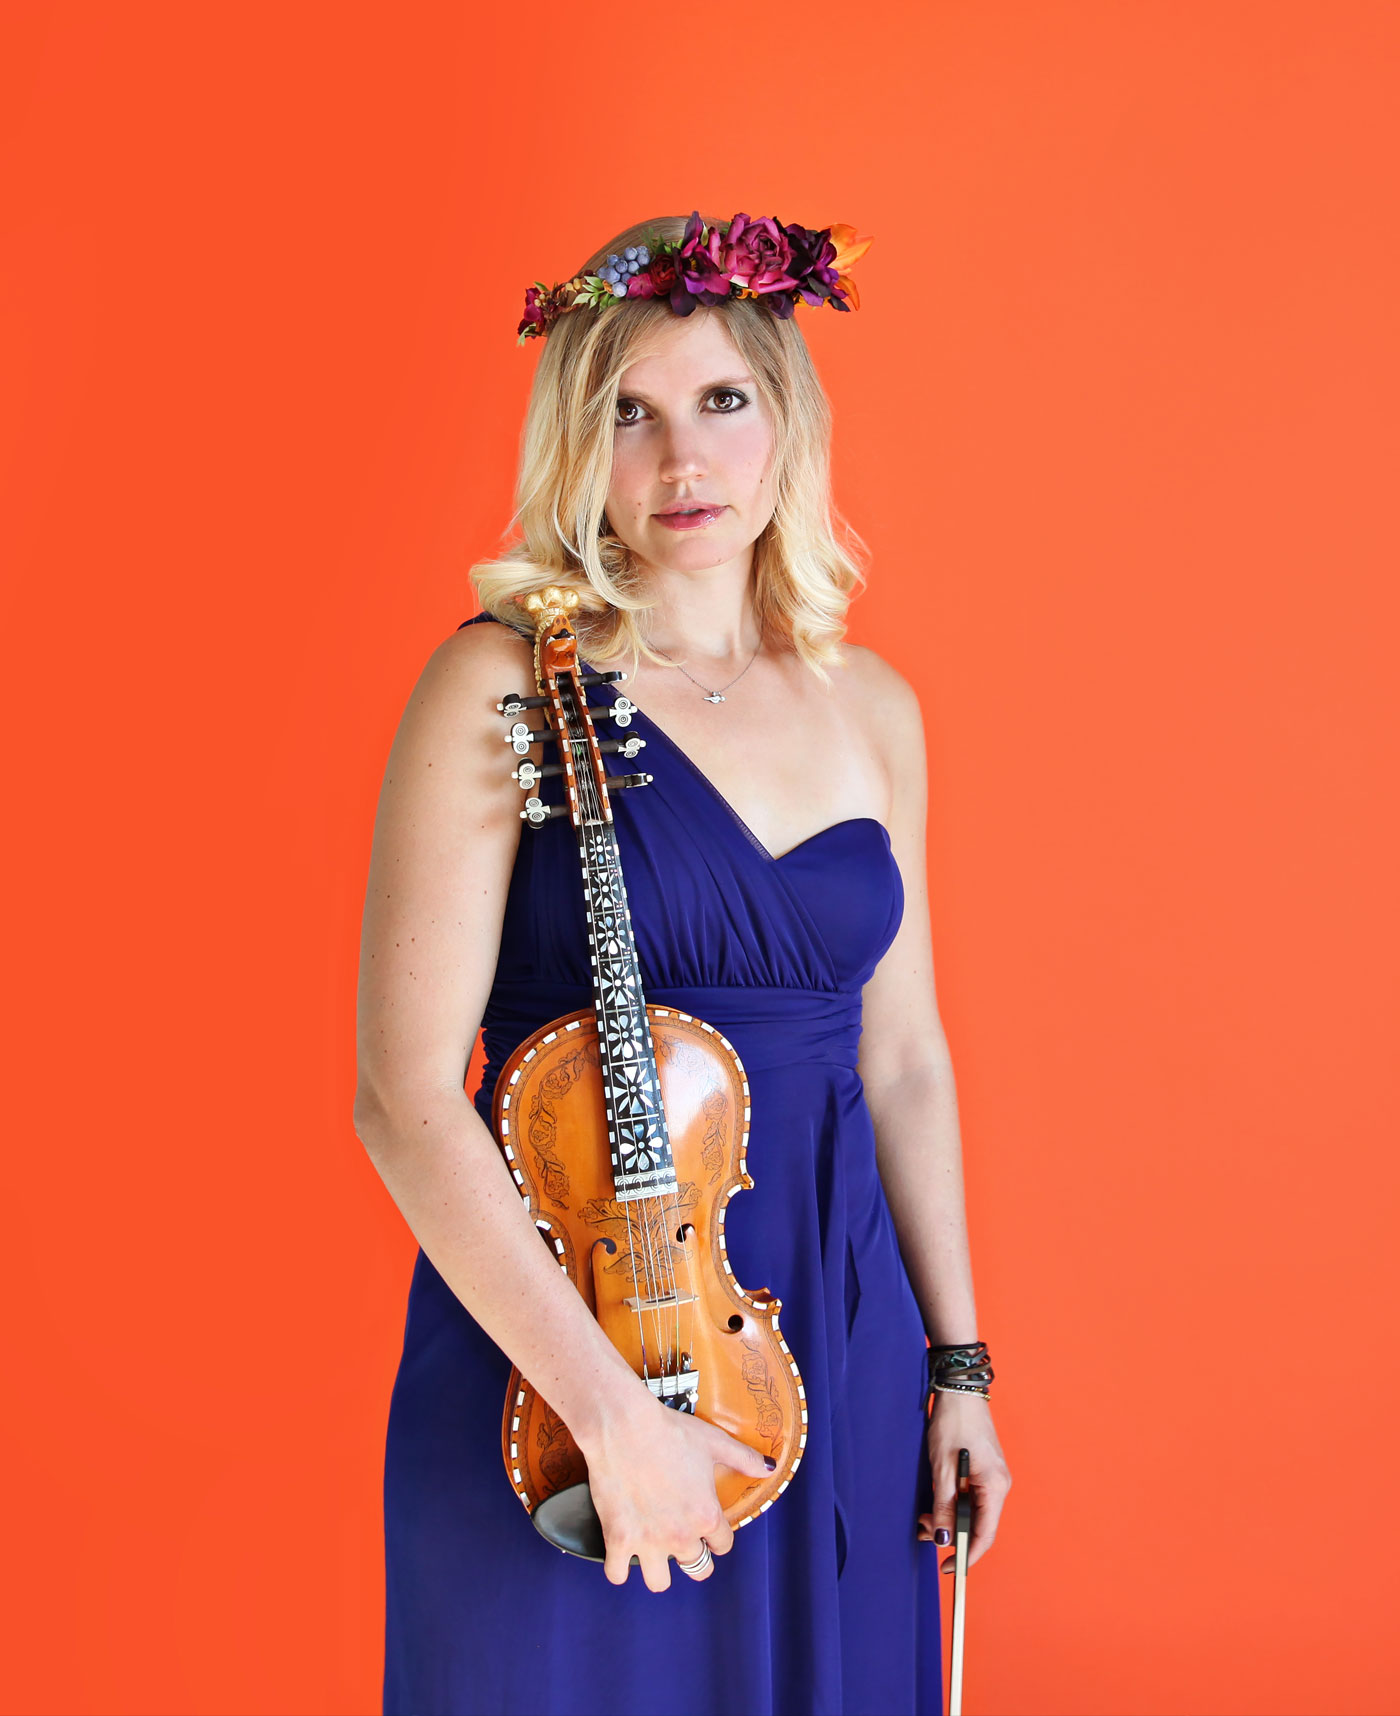 Rachel Nesvig wearing a blue dress on an orange background from 'High Right Now'